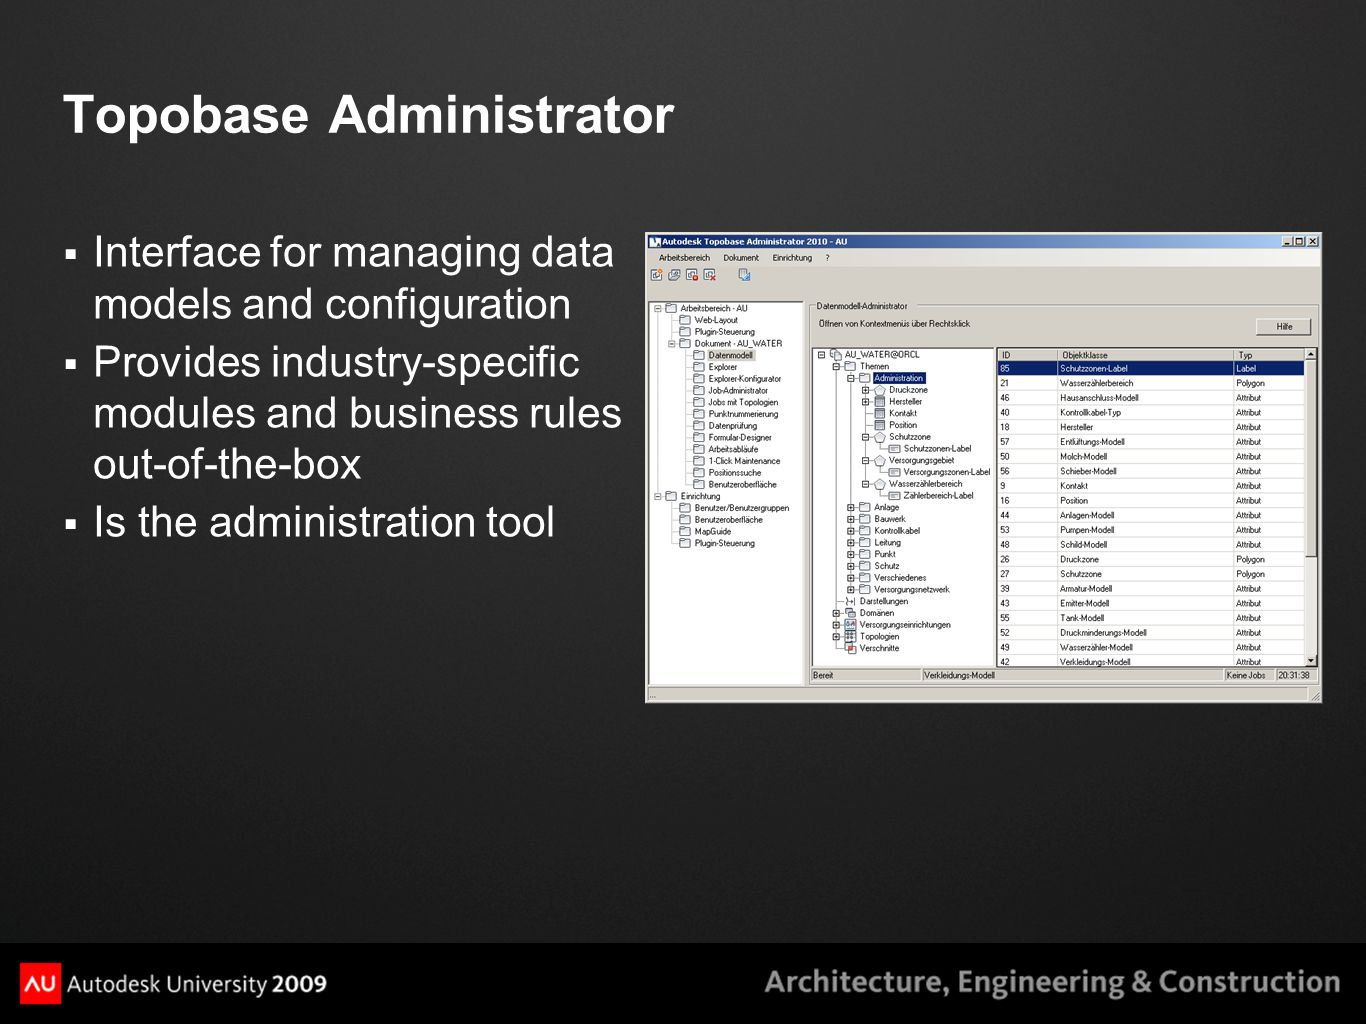 Topobase Administrator  Interface for managing data models and configuration  Provides industry-specific modules and business rules out-of-the-box 